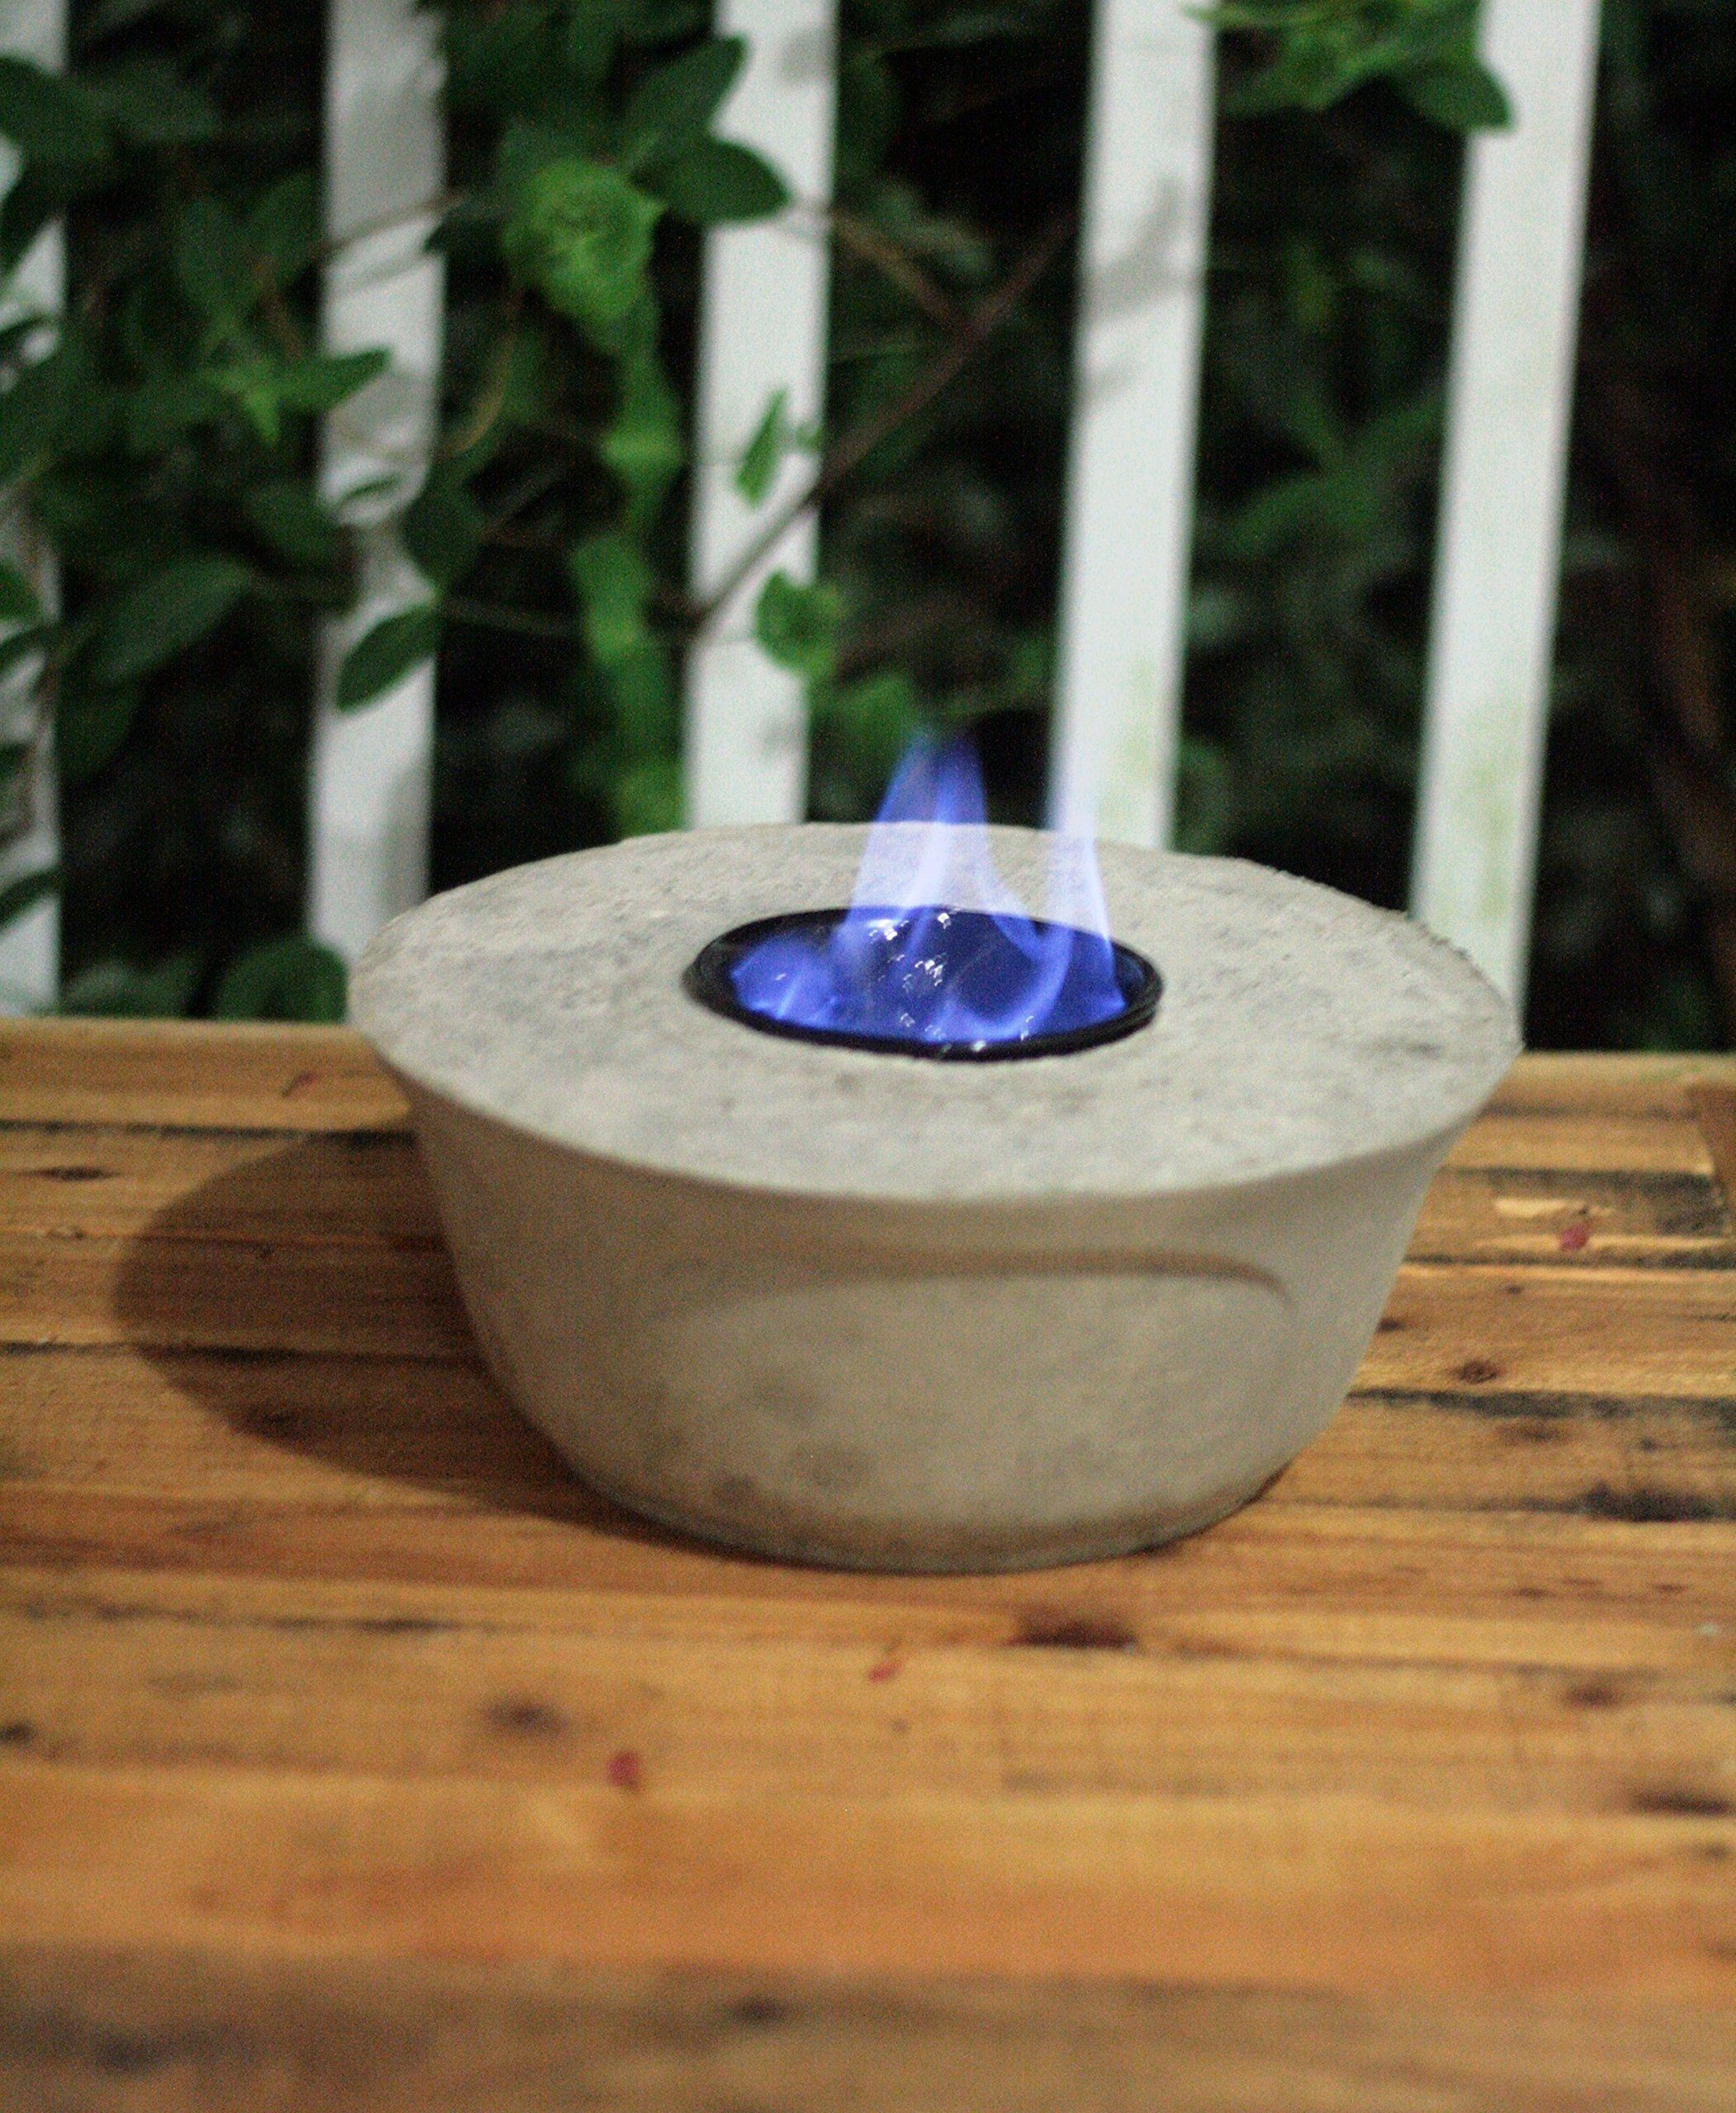 a3dcf6f504d14caed97110bc21339c08 Top Result 50 Awesome Concrete Fire Pit Bowl Photos 2018 Kae2